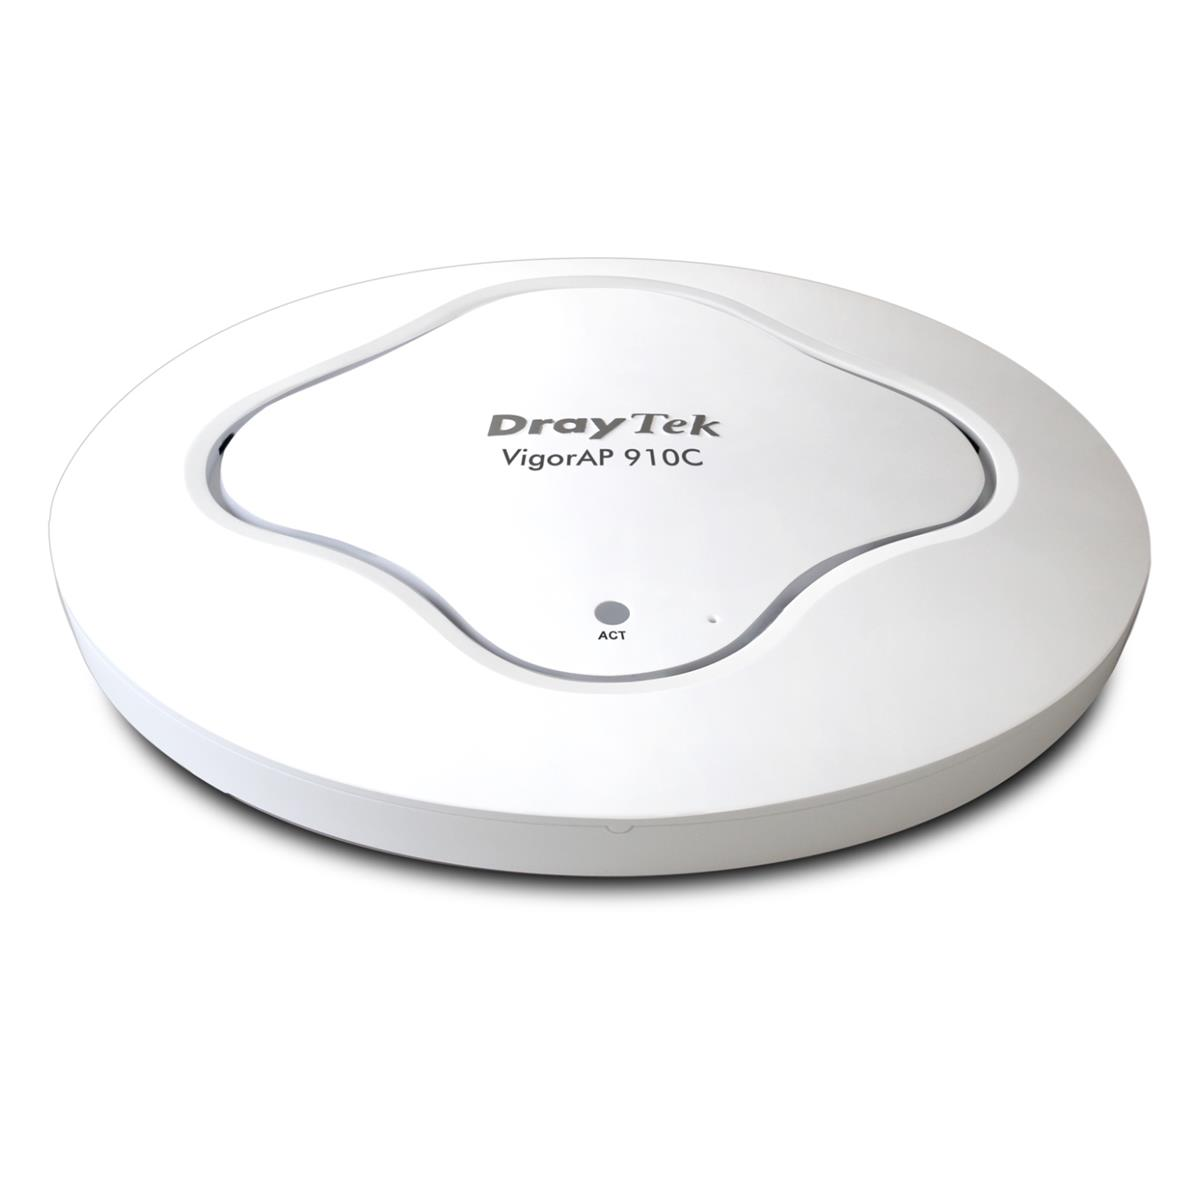 DrayTek AP 910C Wifi Access Point